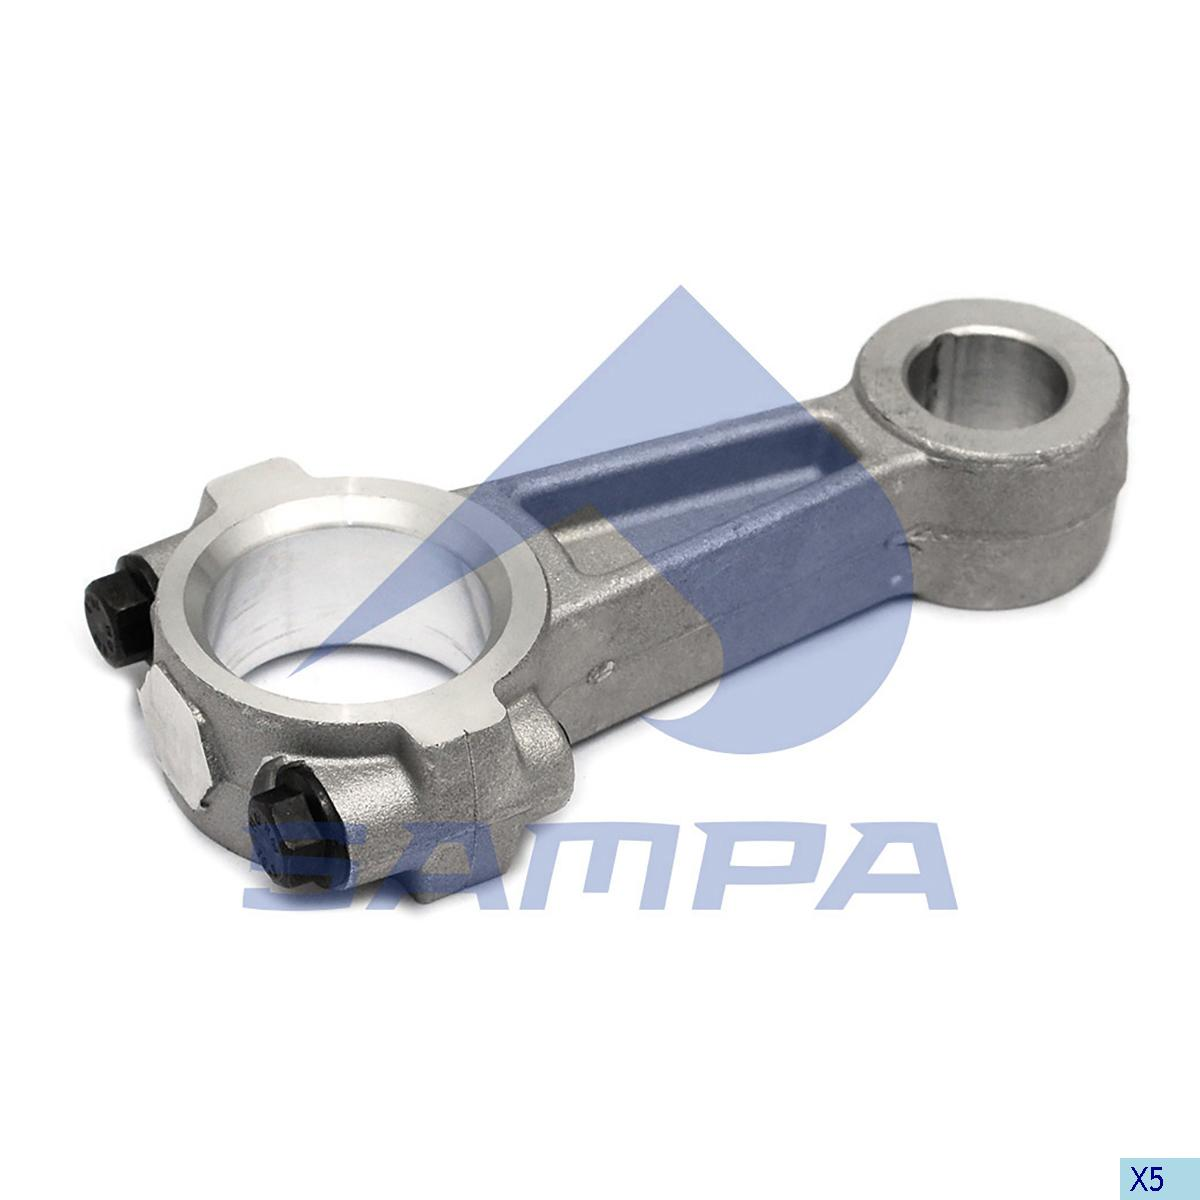 Connecting Rod, Piston, Volvo, Compressed Air System